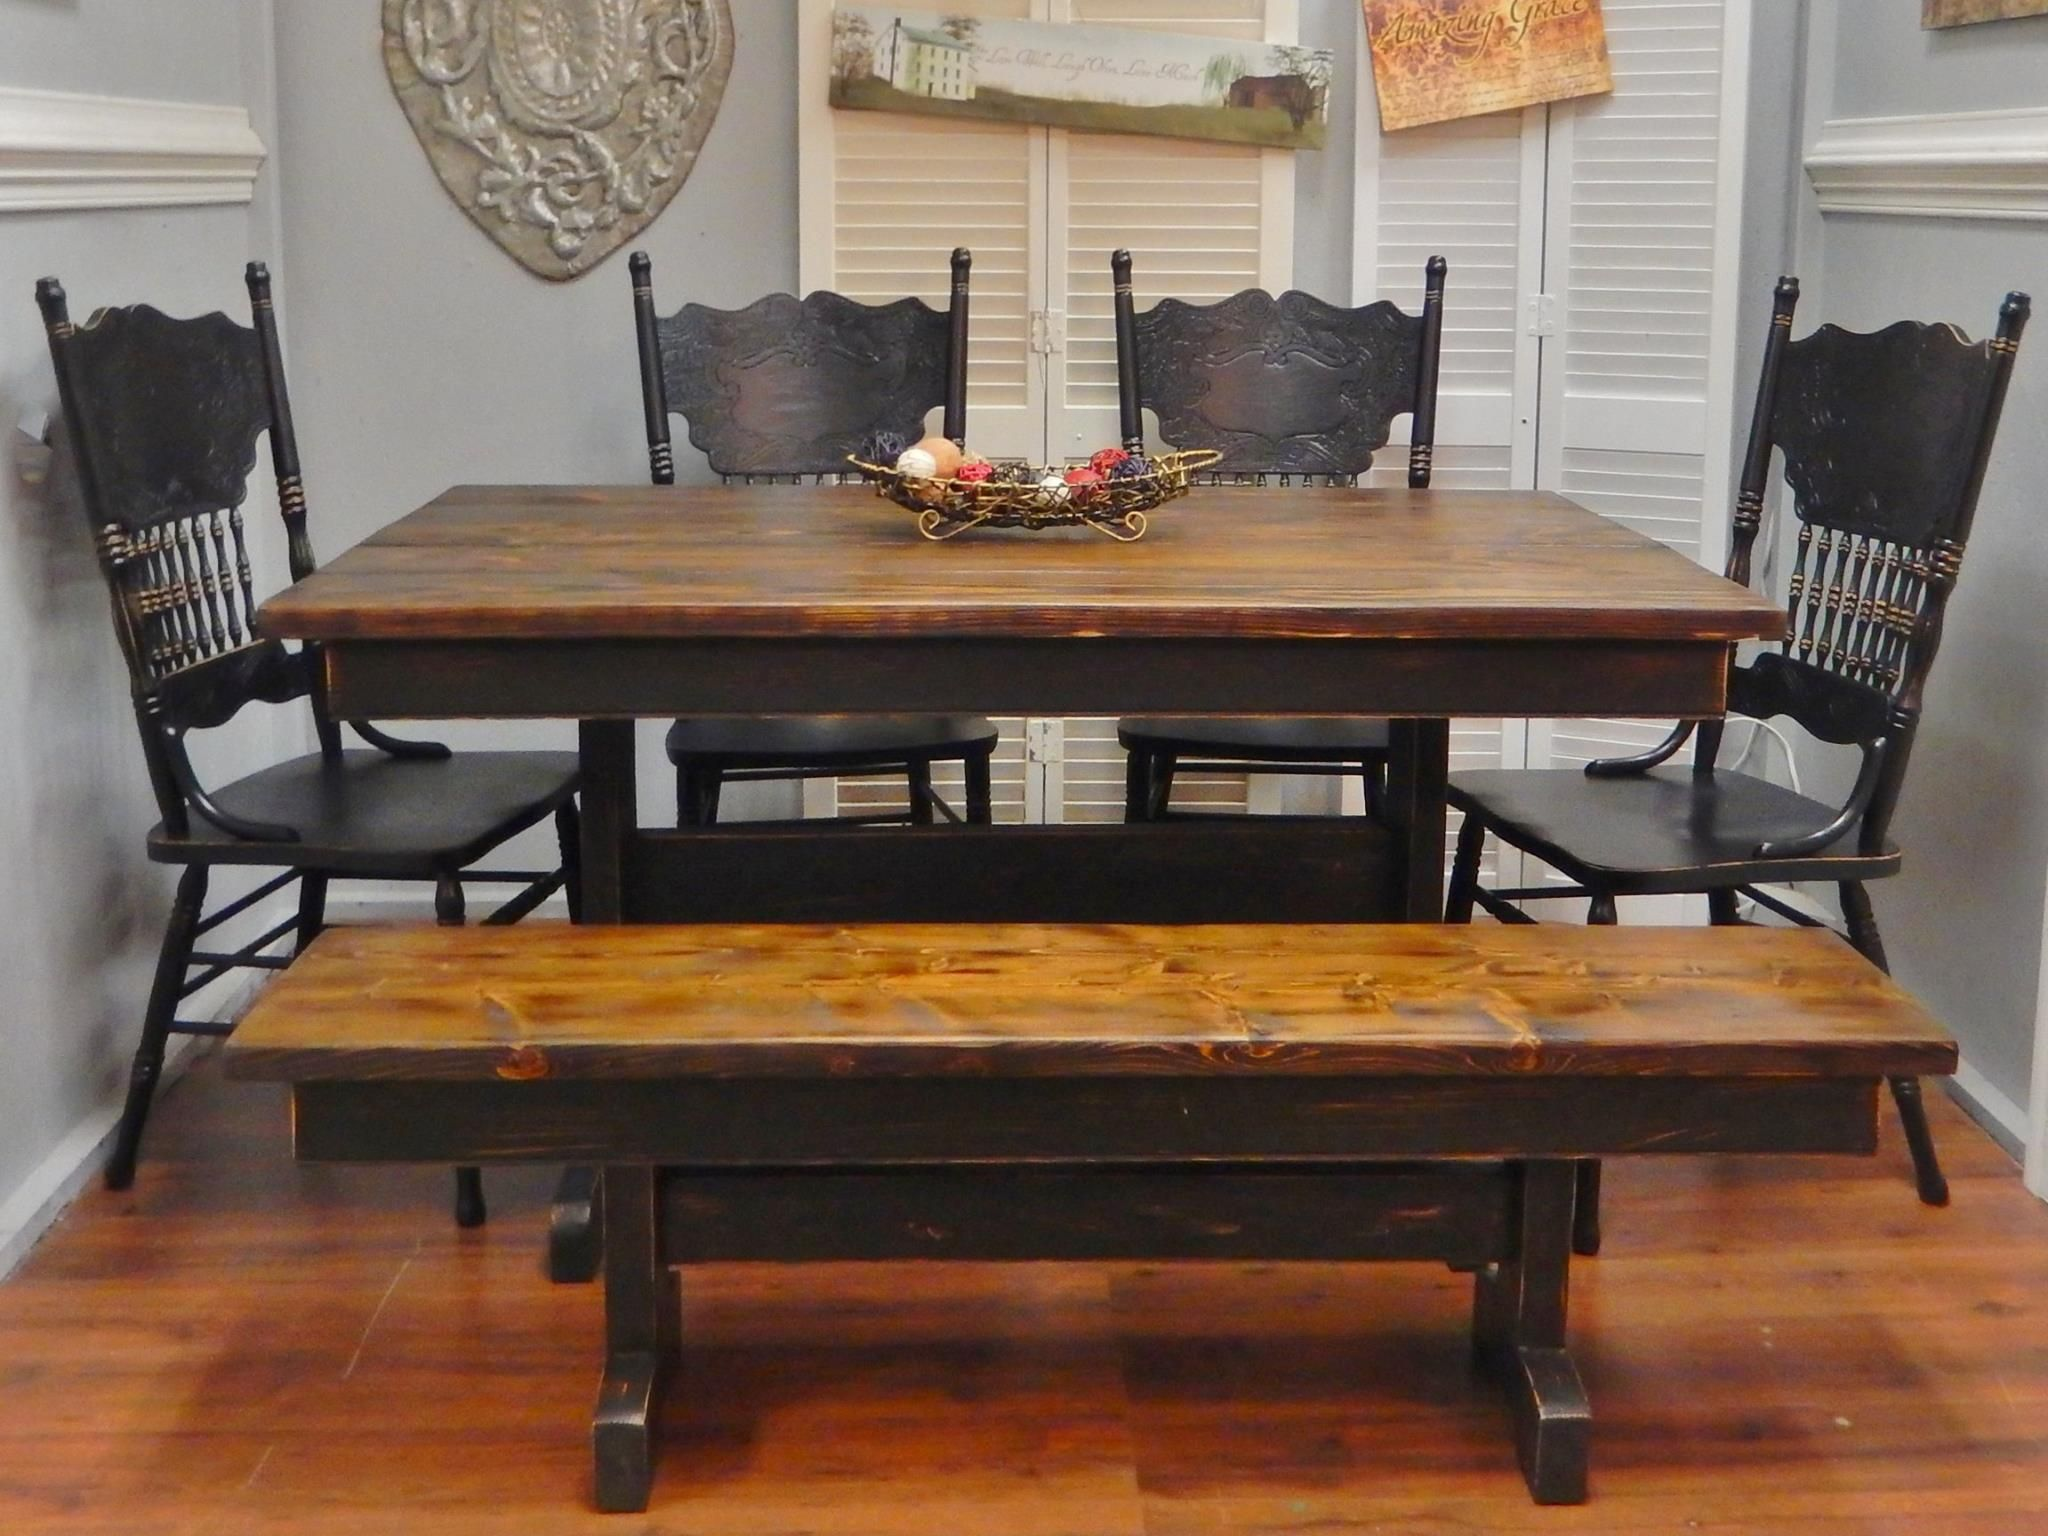 Oak Pressback Chairs With Painted Kitchen Table Ideas